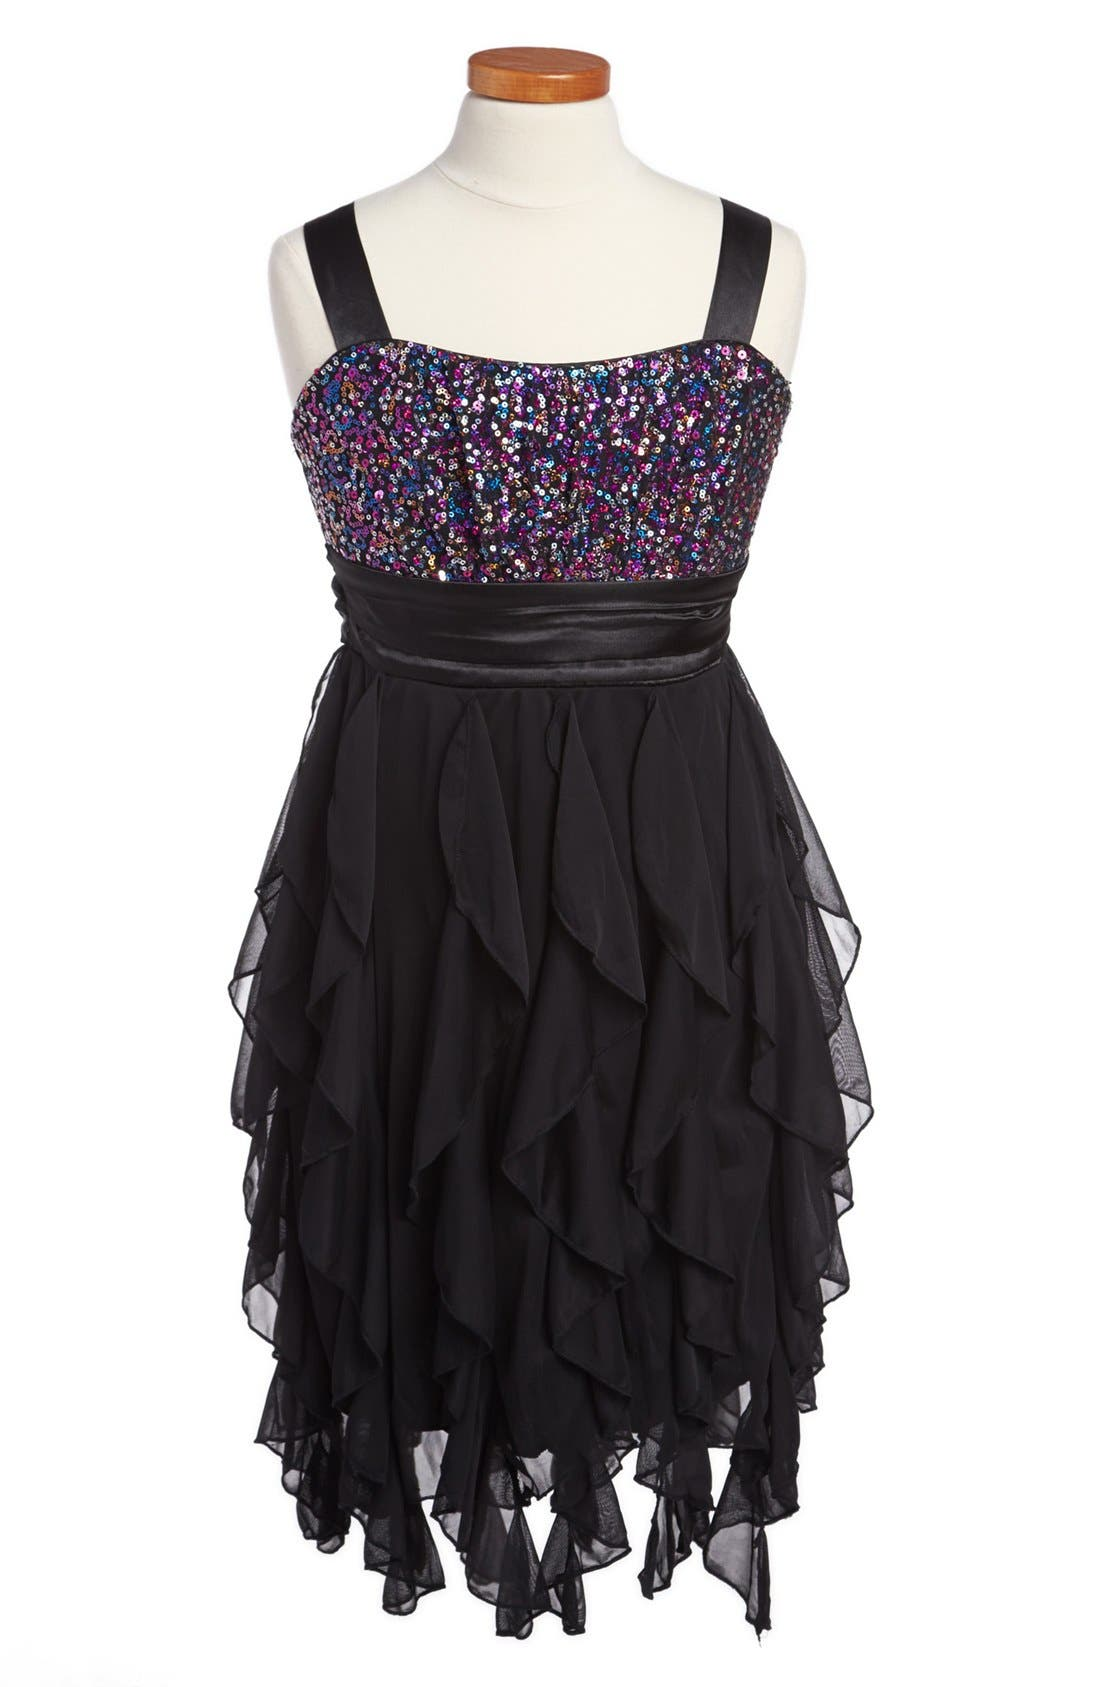 Alternate Image 1 Selected - Roxette Sequin Corkscrew Dress (Big Girls)